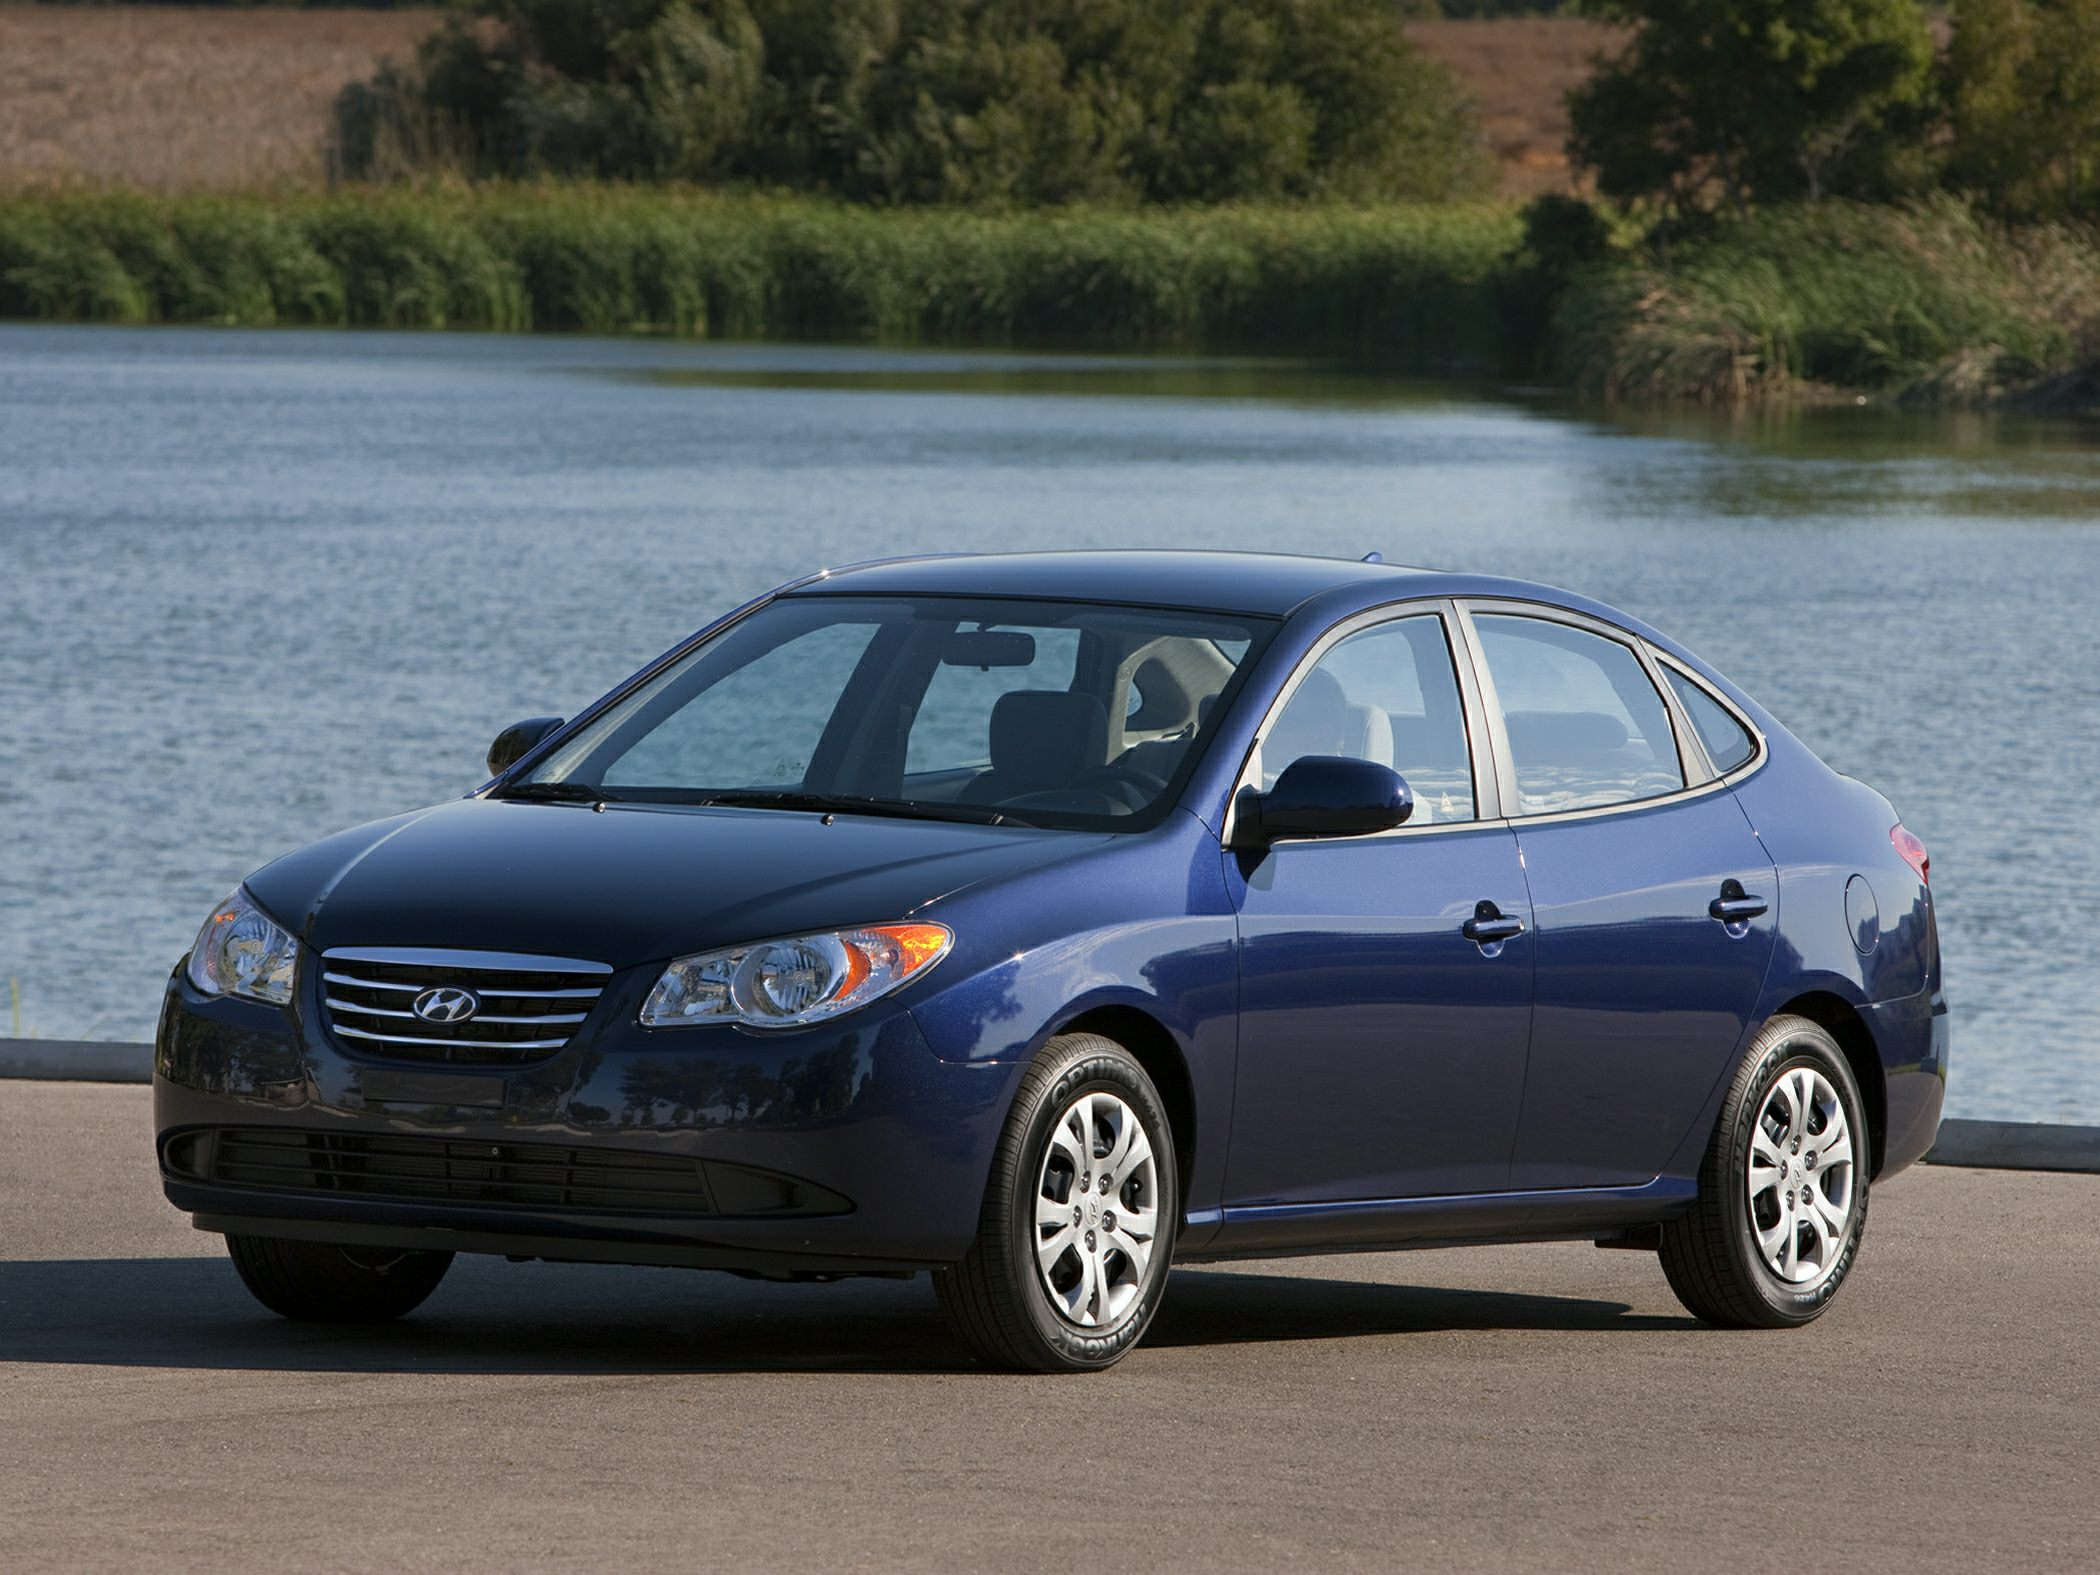 2010 Hyundai Elantra GLS Gray Talk about MPG Super gas saver New Arrival If youve been aching